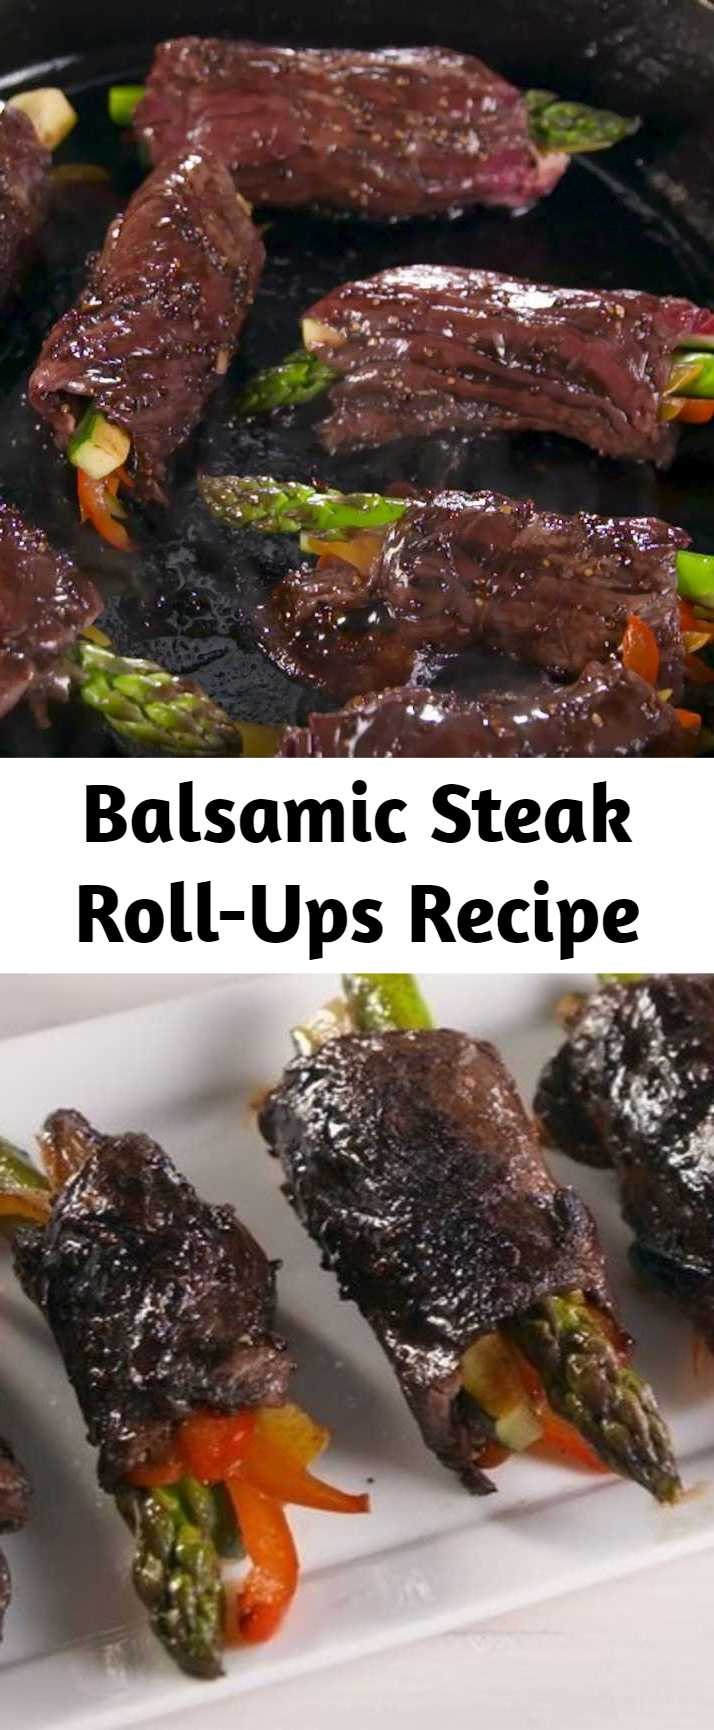 Balsamic Steak Roll-Ups Recipe - Securing the roll-ups with toothpicks makes them MUCH easier to cook. Just don't forget to remove them when it's time for serving! #easyrecipe #steak #lowcarb #meat #party